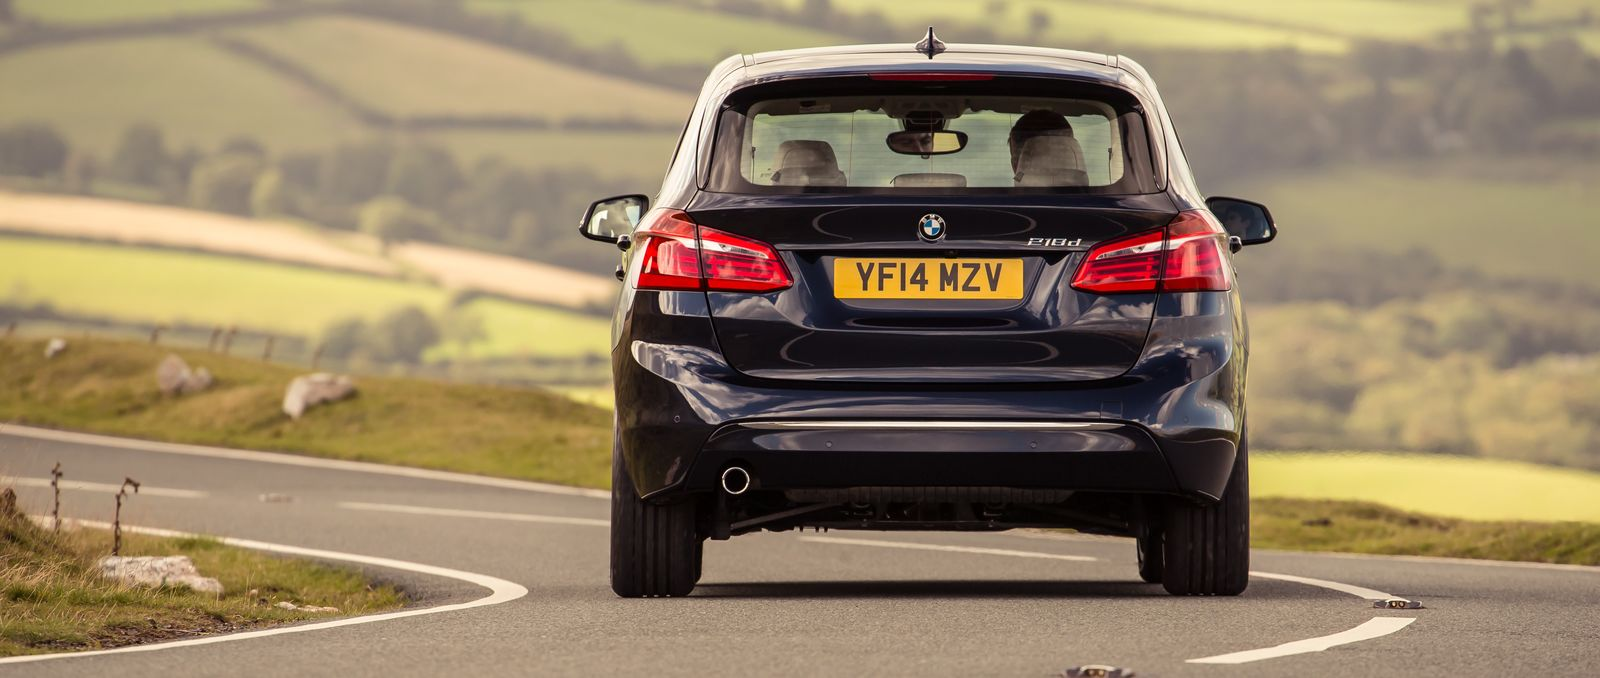 BMW Series Active Tourer Sizes And Dimensions Carwow - Bmw 2 series weight